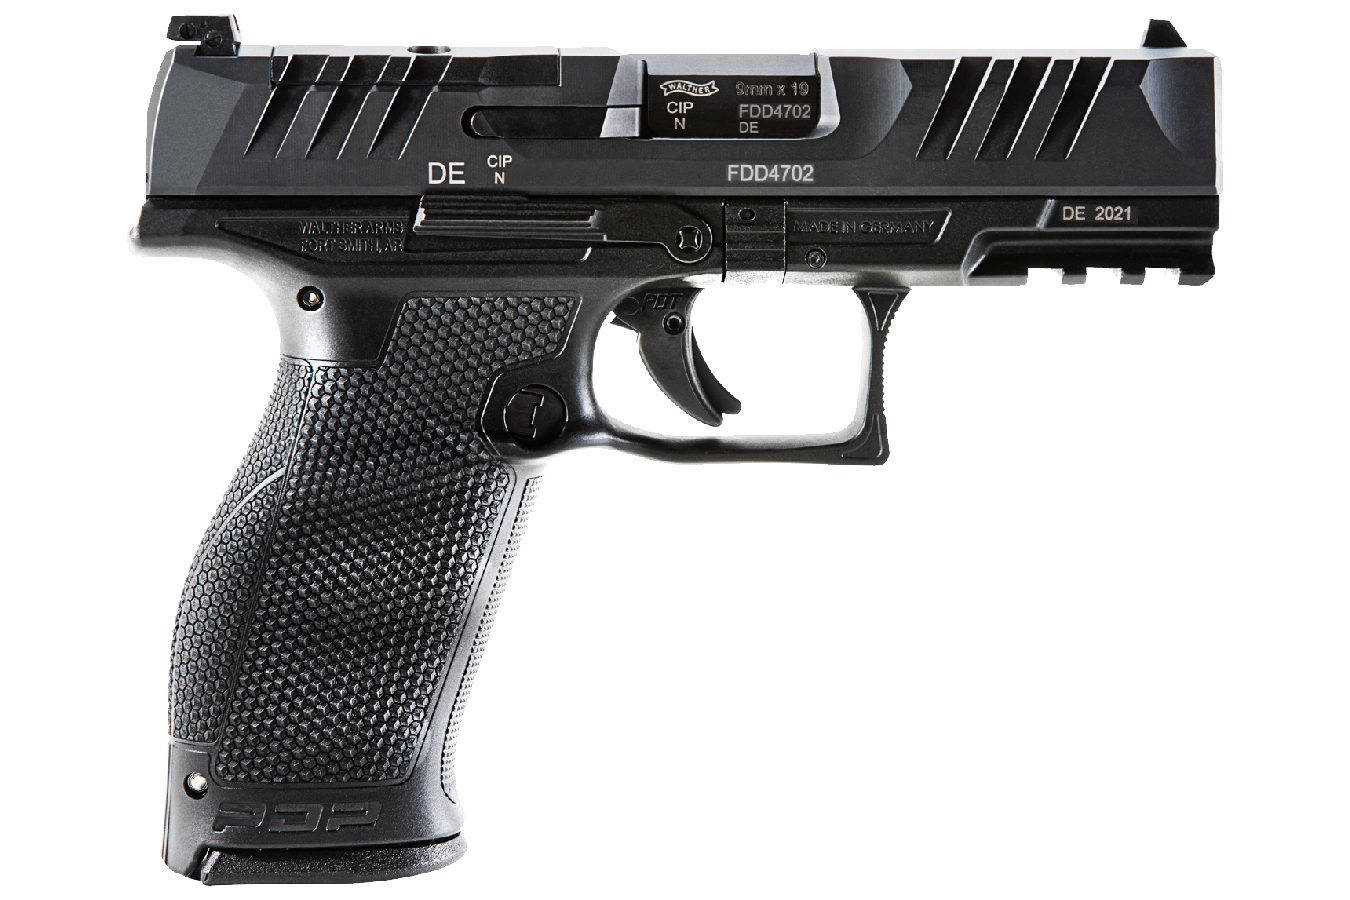 PDP FULL-SIZE 9MM OPTICS READY PISTOL WITH 4 INCH BARREL, TRITIUM SIGHTS AND THR